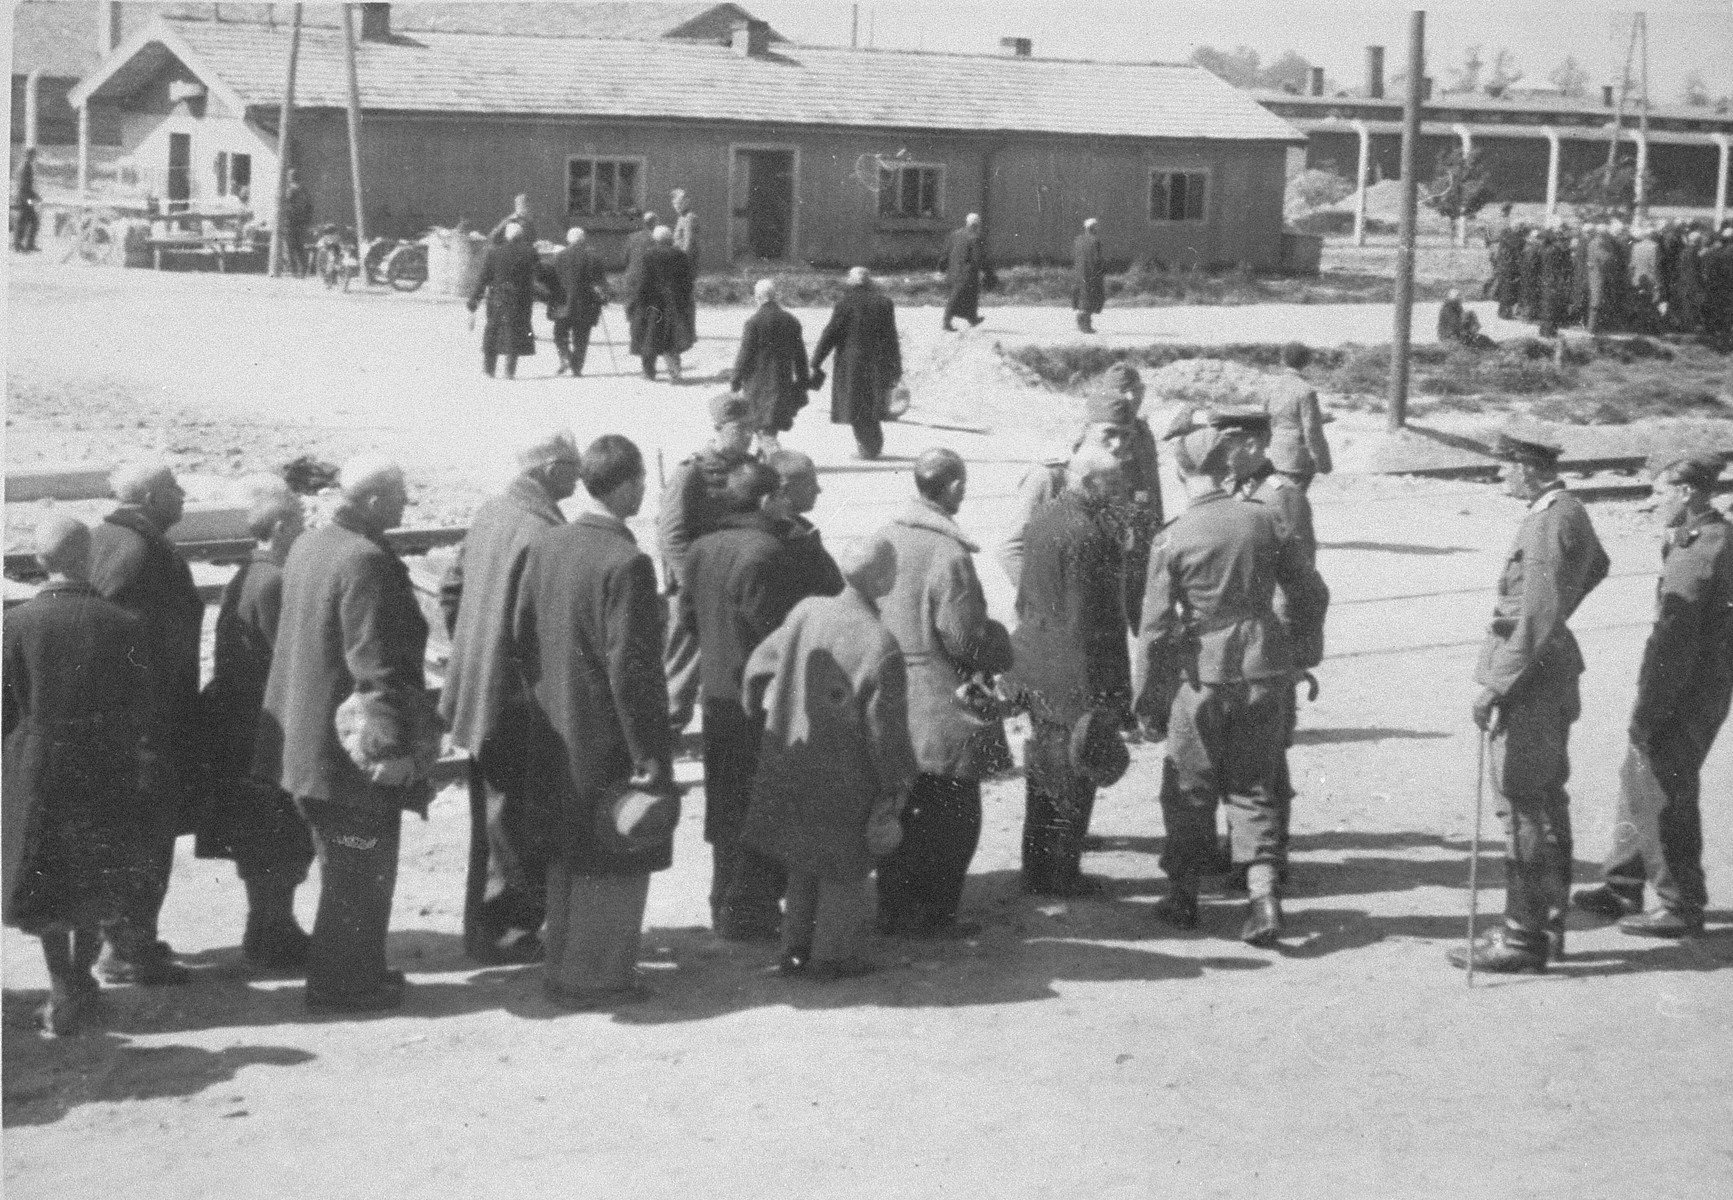 Jews from Subcarpathian Rus undergo selection at Auschwitz-Birkenau; in the background is a group of Jews headed towards the gas chambers and crematoria.